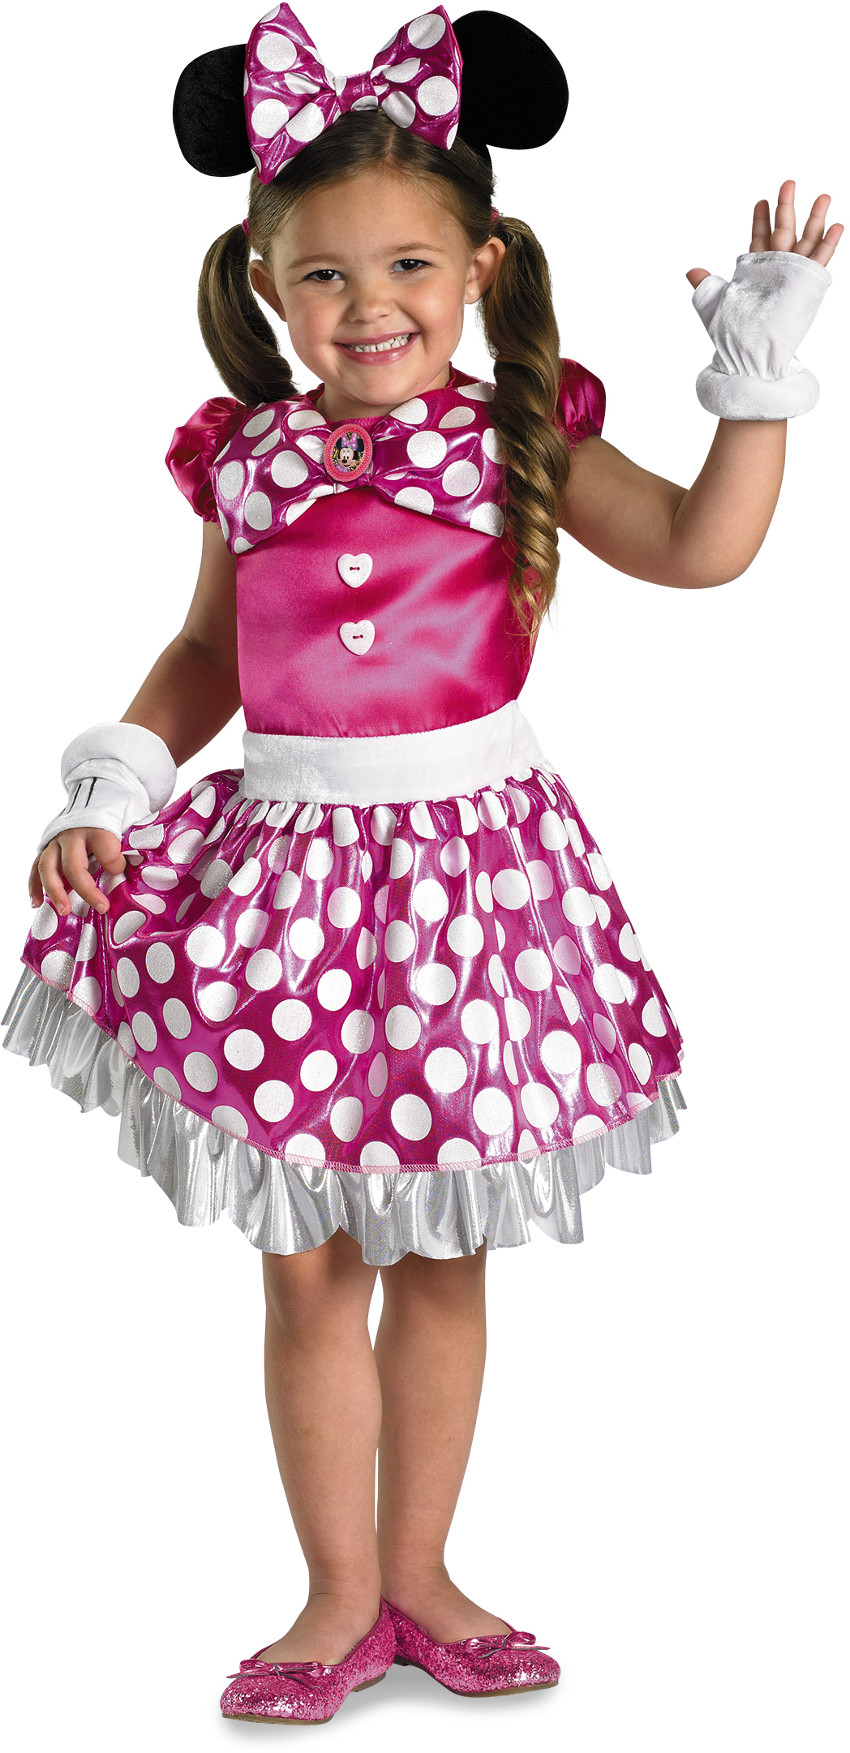 Disney Mickey Mouse Clubhouse Pink Minnie Mouse Costume  sc 1 st  Walmart & Disney Mickey Mouse Clubhouse Pink Minnie Mouse Costume - Walmart.com